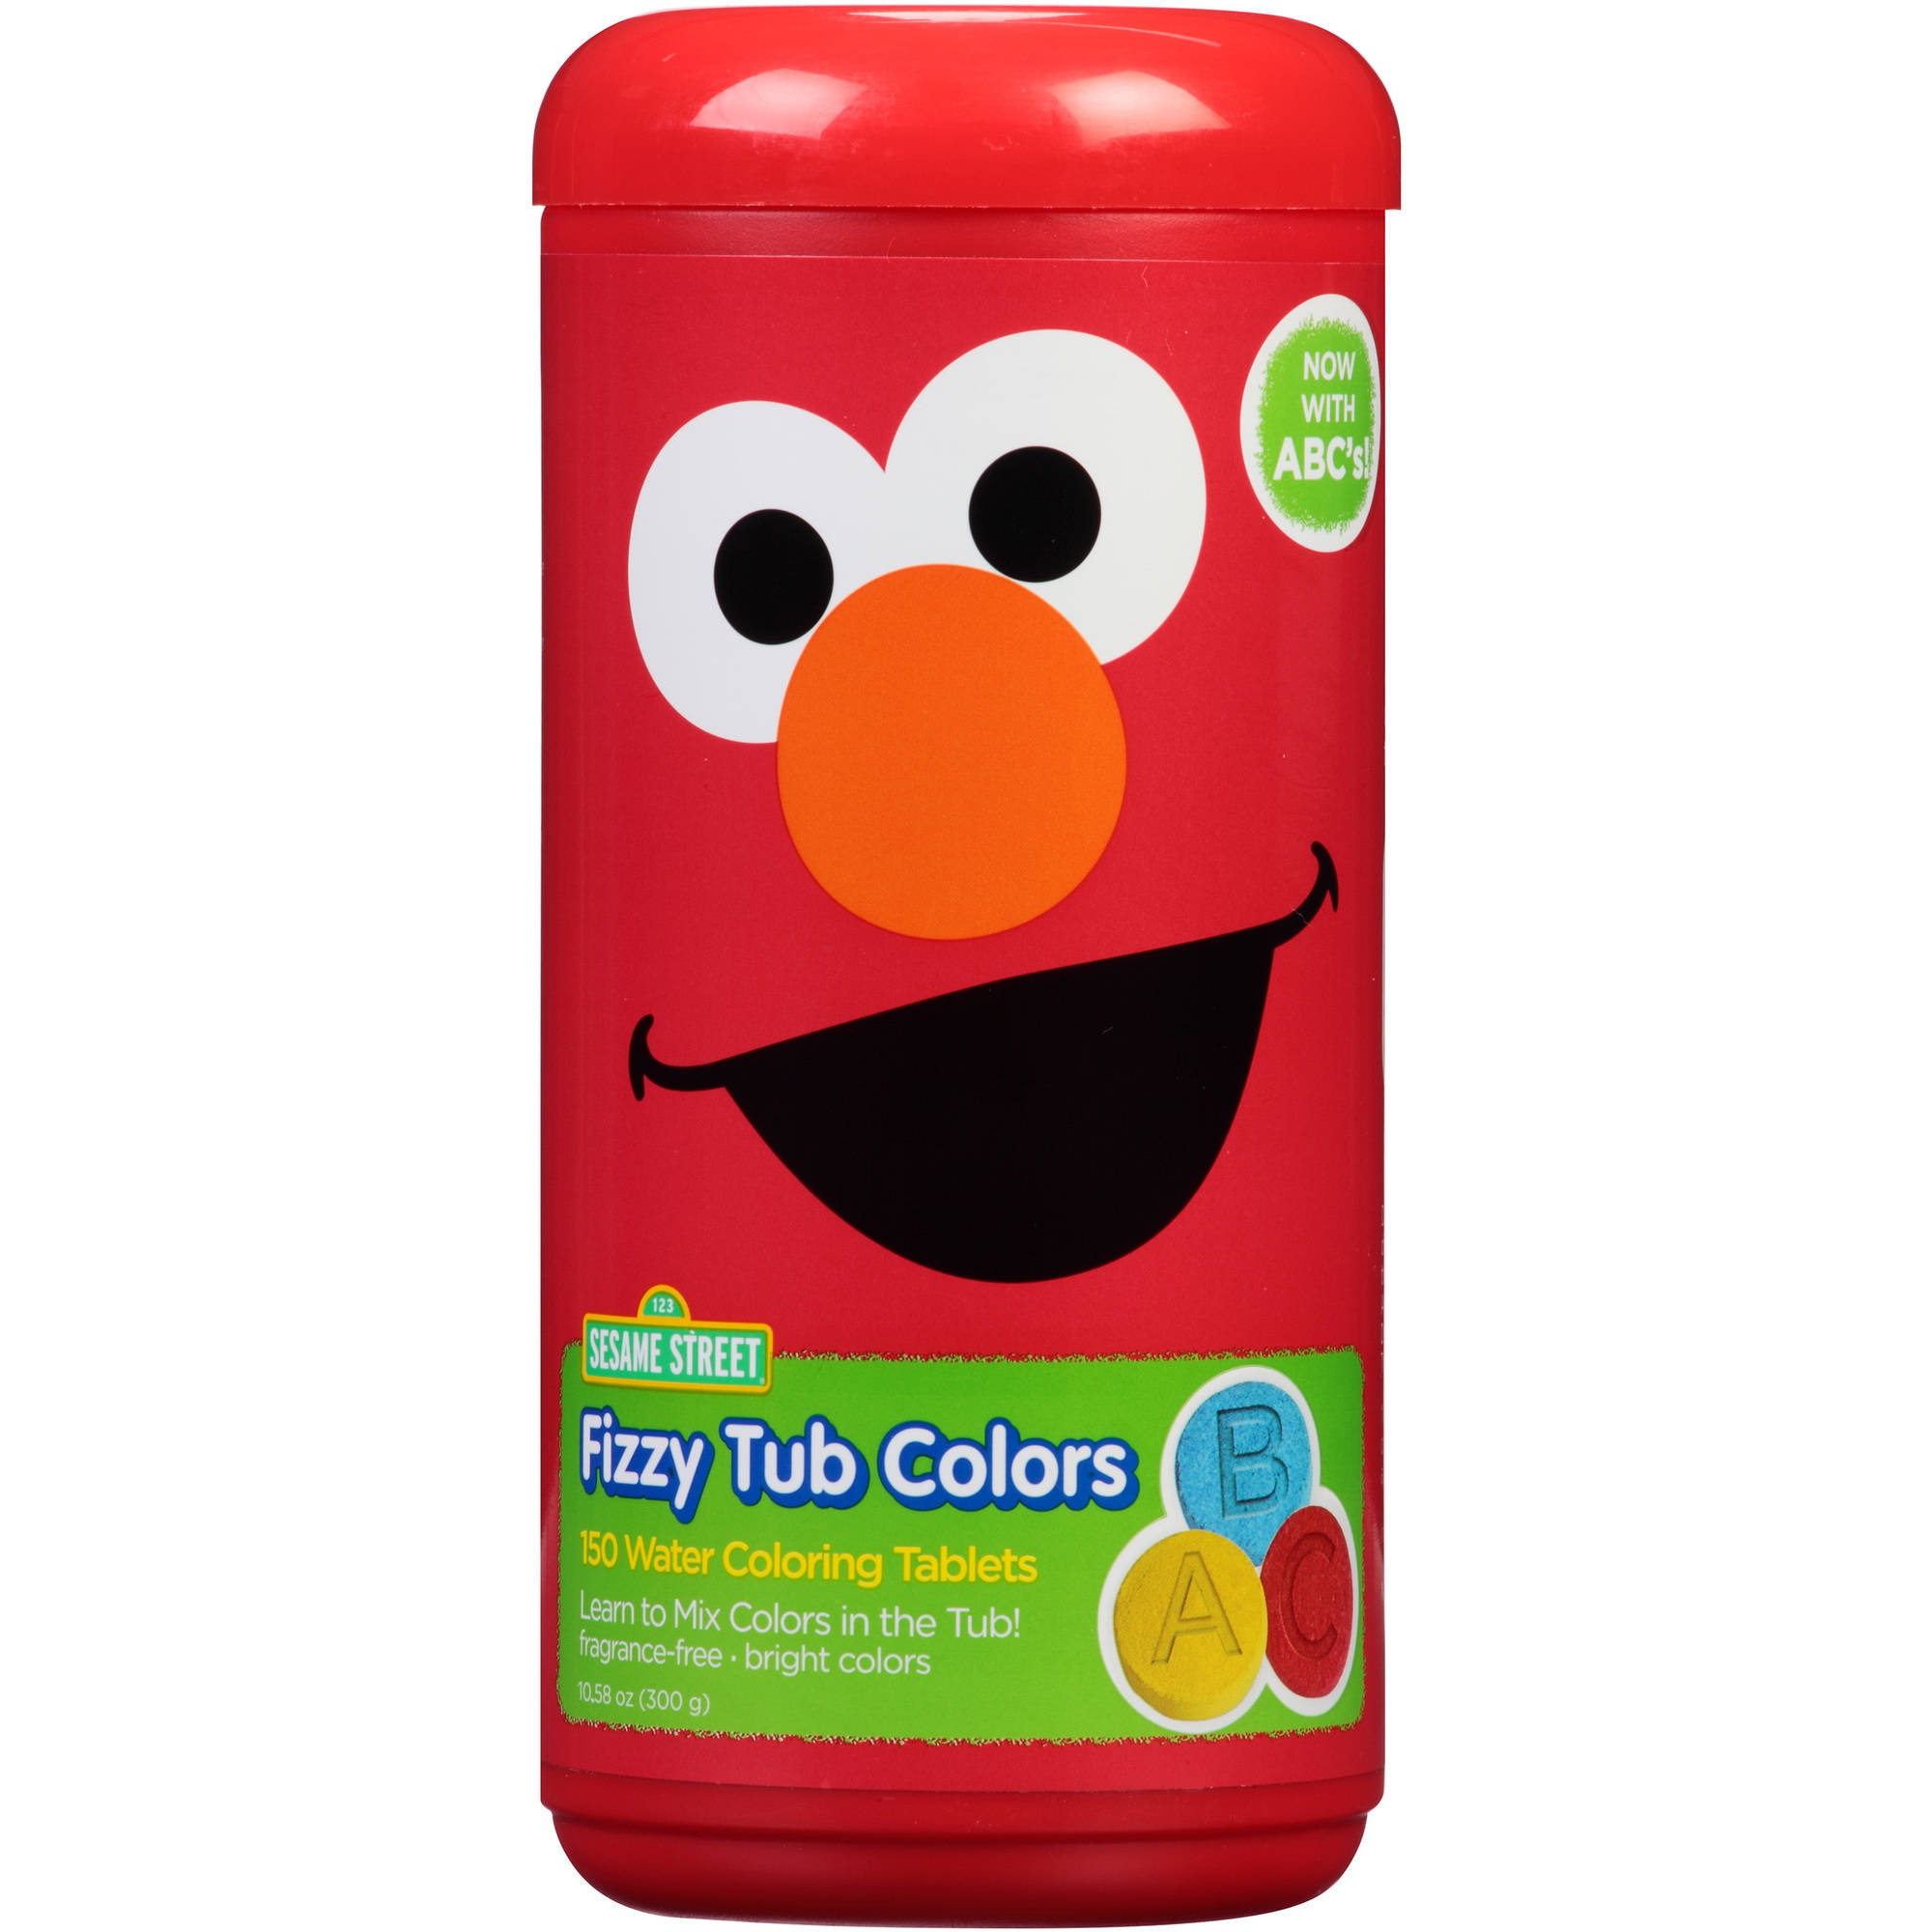 Sesame Street Fizzy Tub Colors Water Coloring Tablets  150 count  10 58 oz    Walmart com. Sesame Street Fizzy Tub Colors Water Coloring Tablets  150 count